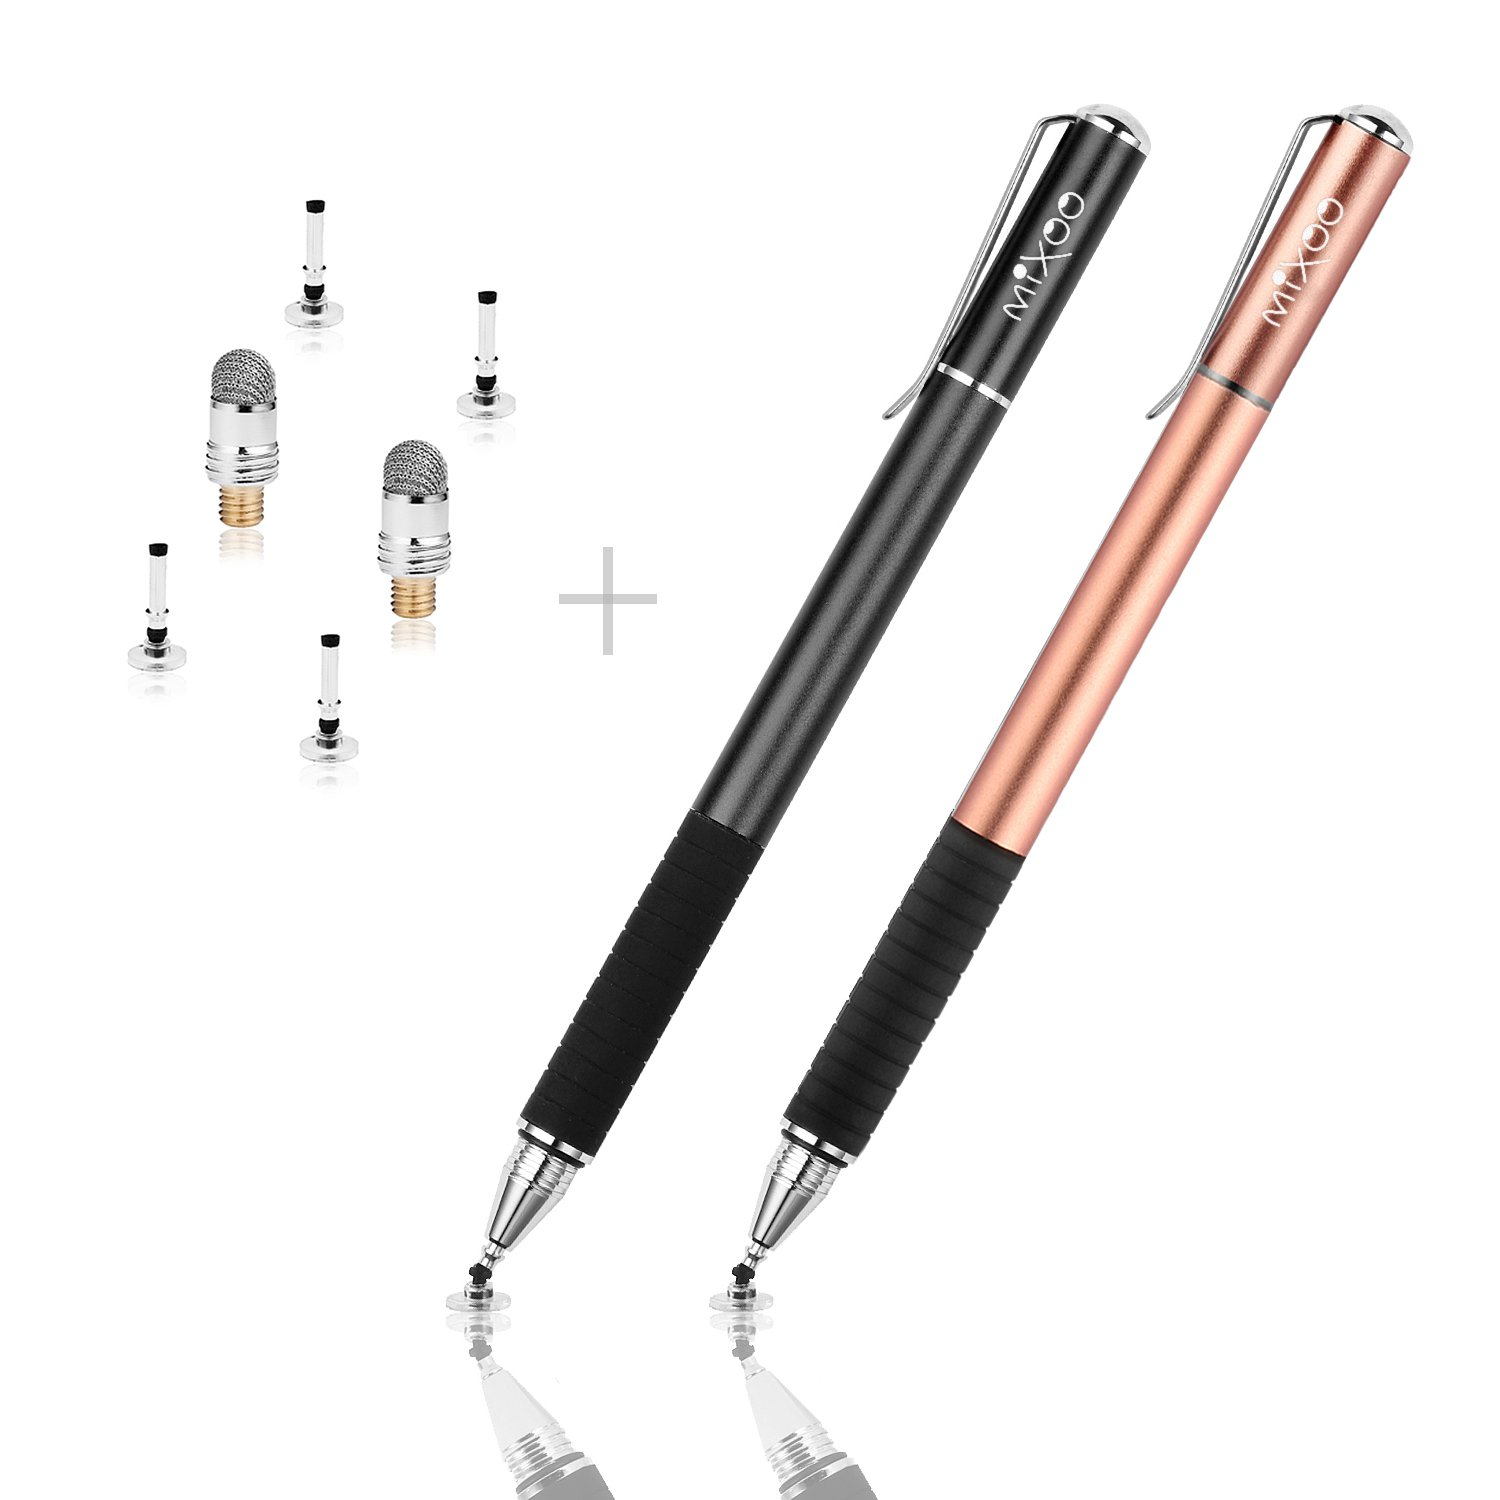 Mixoo Capacitive Stylus Pen,Disc Tip & Fiber Tip 2in1 Series, High Sensitivity & Precision styli Pens, Universal for ipad,iPhone, Tablet, Other Touch Screens Devices (Rose Gold/Black)